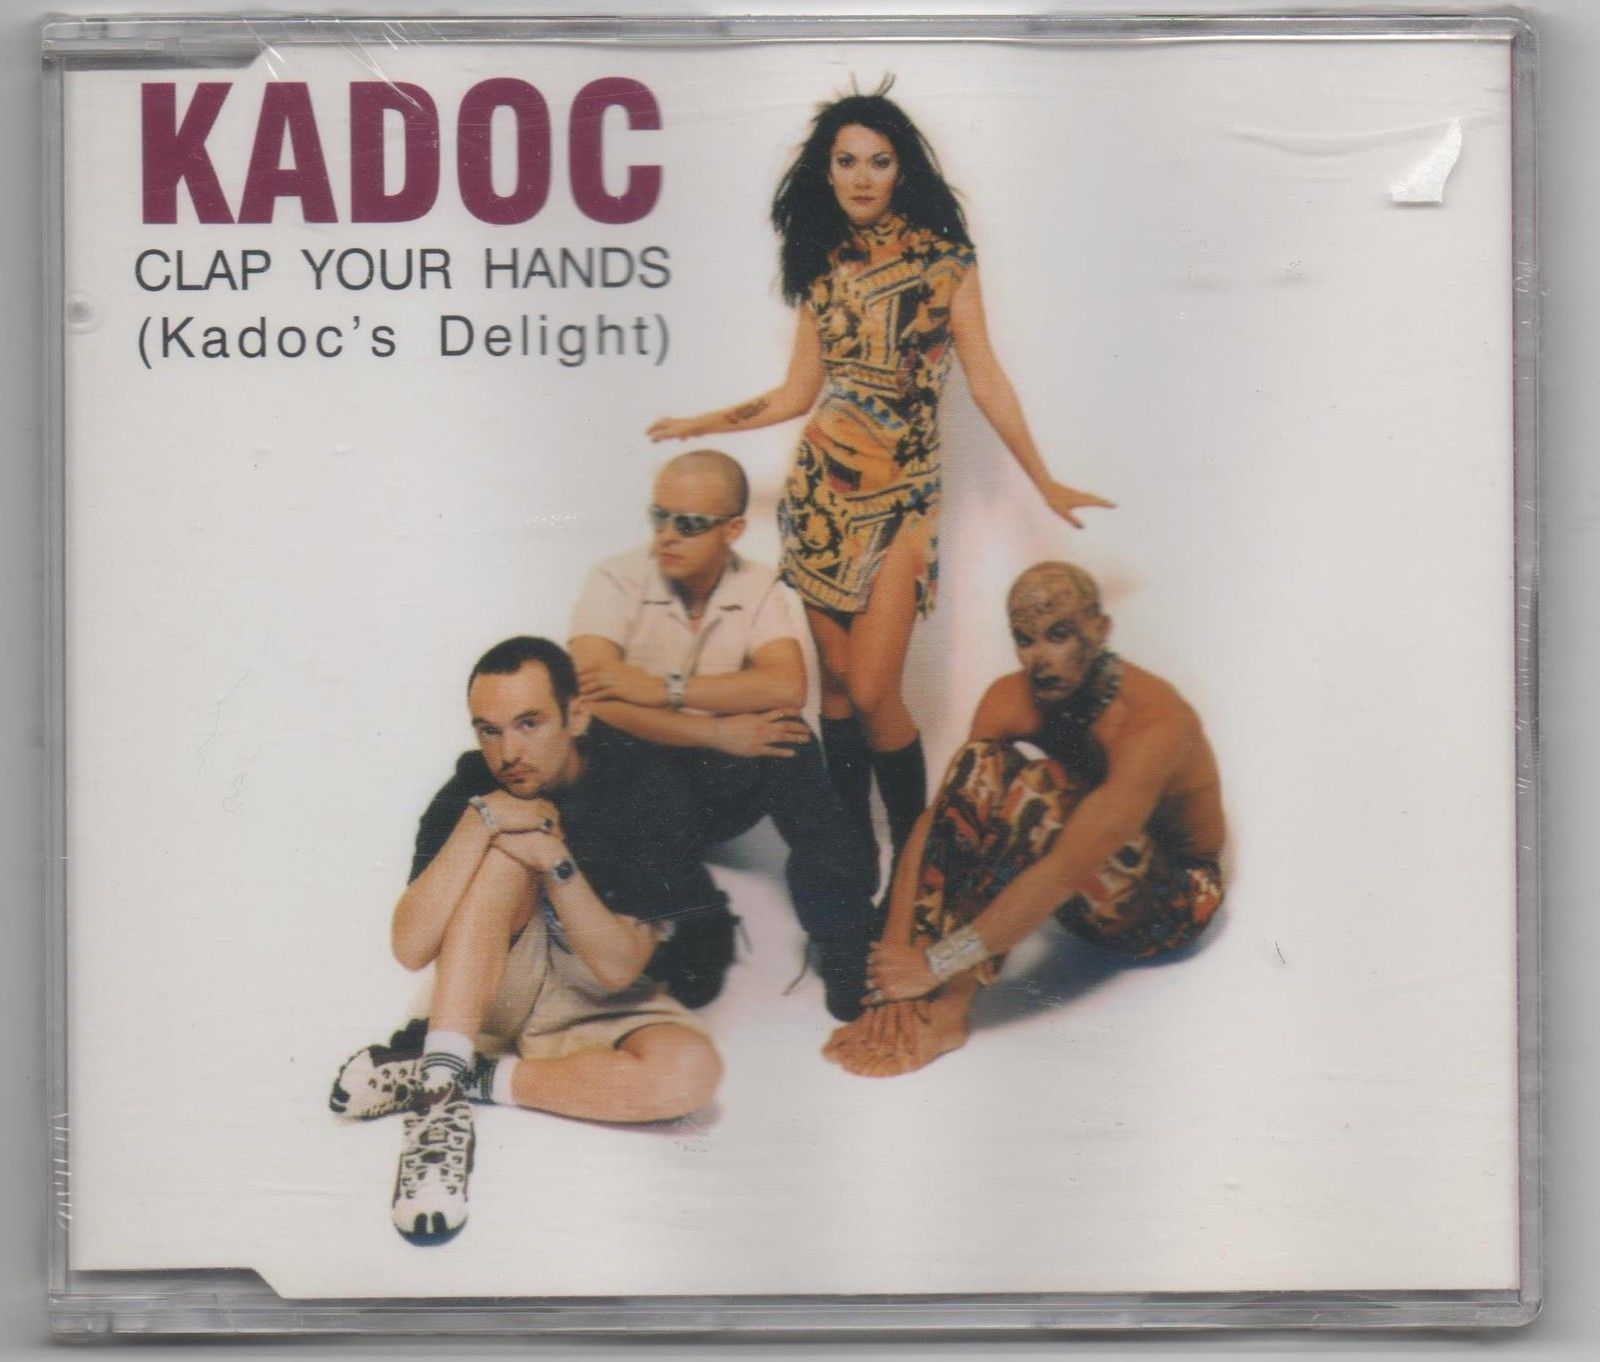 Primary image for Kadoc Clap Your Hands Limited Edition Australia factoryRemixes CD